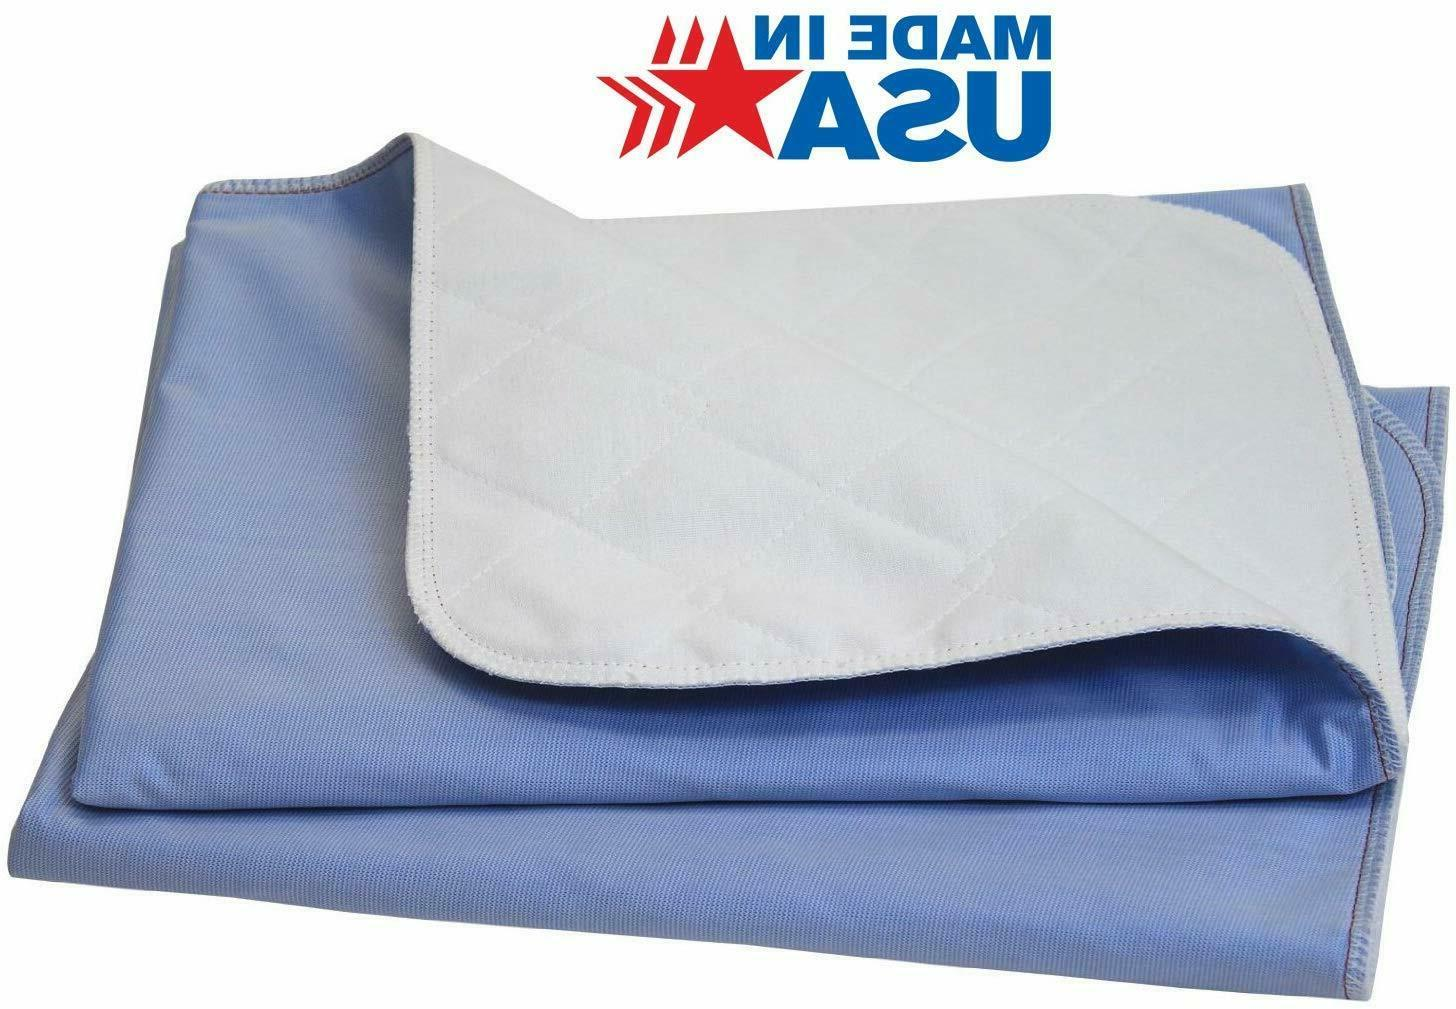 36x72 reusable adult bed pads underpad hospital